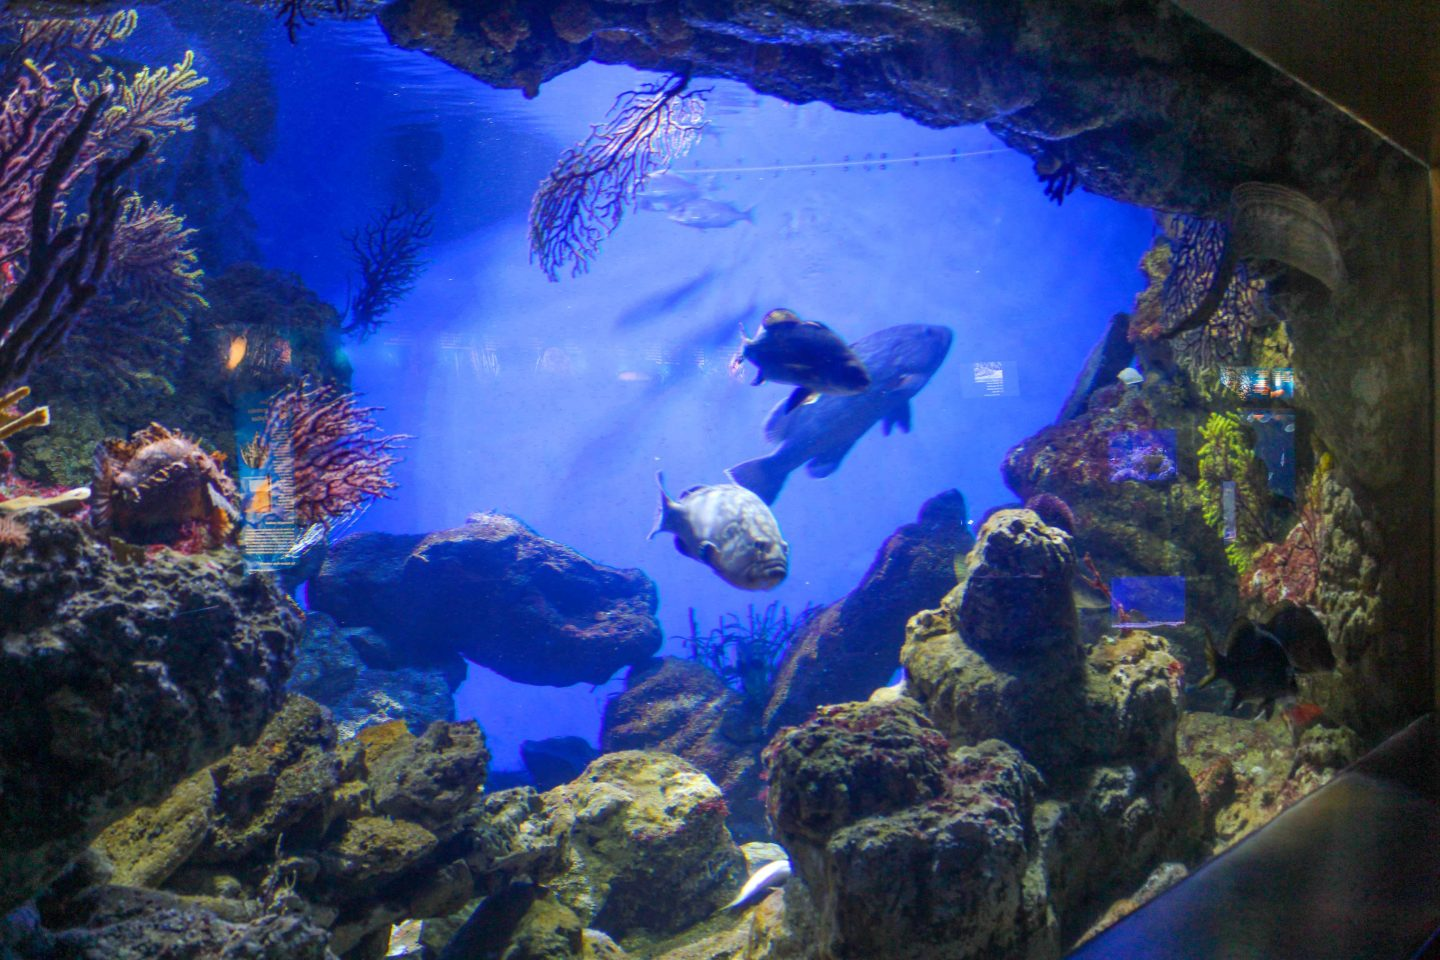 aquarium de barcelona amazing experience for any kid